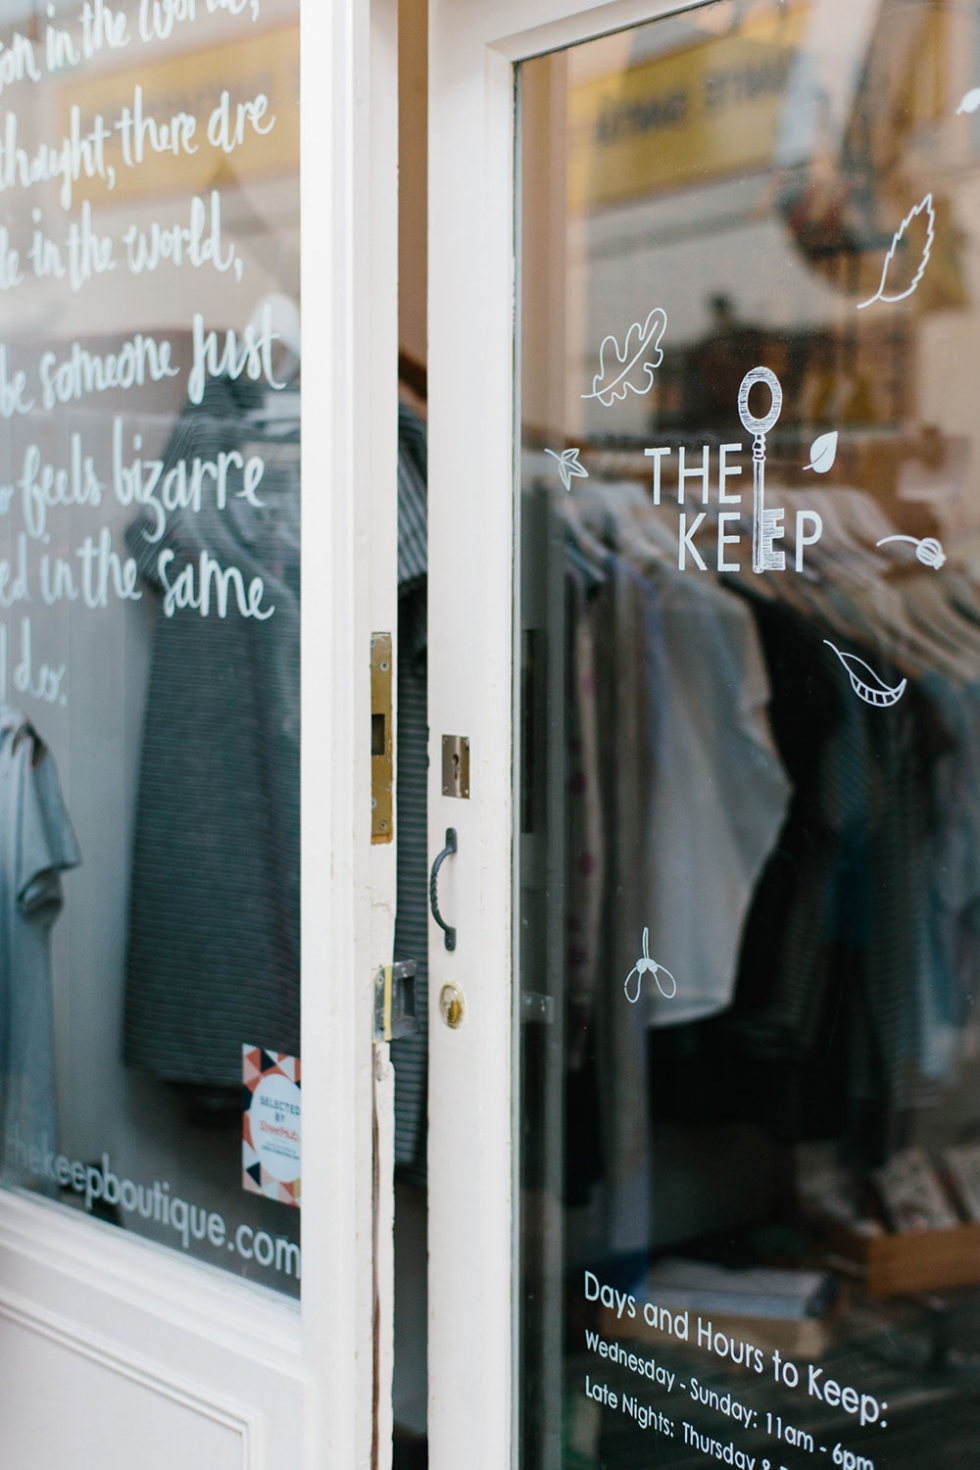 The Keep Boutique sustainable fashion store in Brixton Village, London